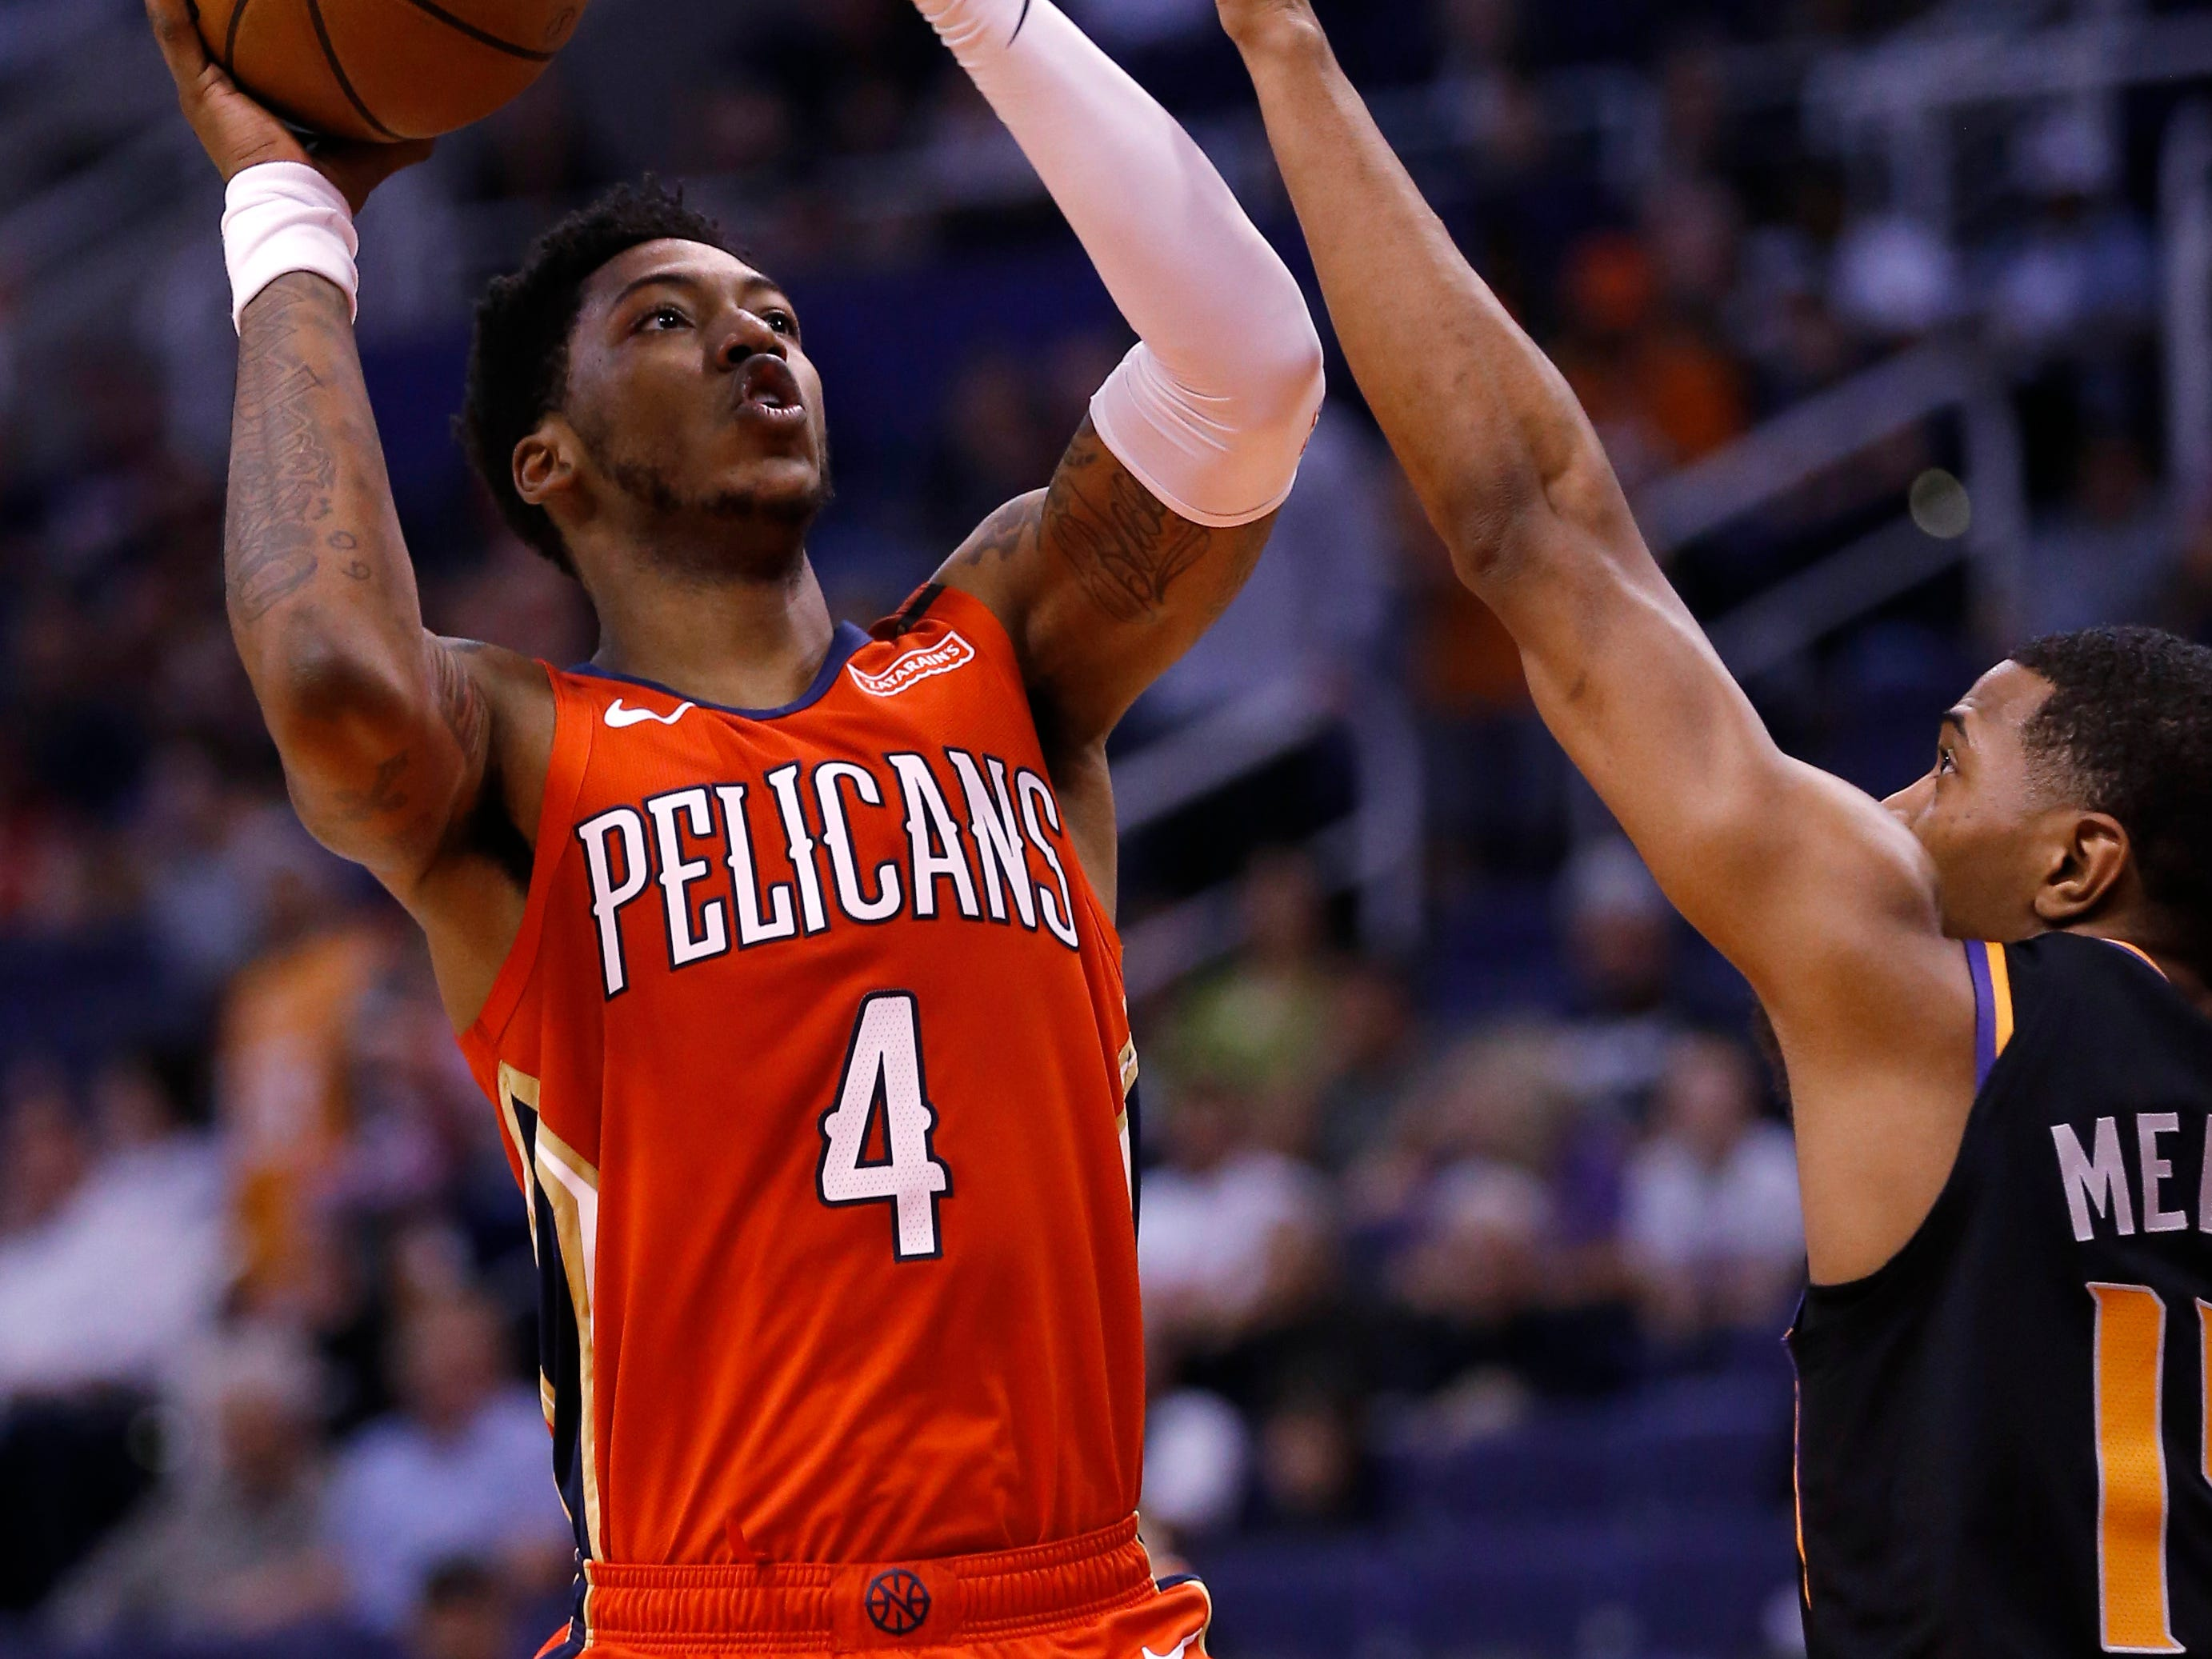 New Orleans Pelicans guard Elfrid Payton (4) shoots over Phoenix Suns guard De'Anthony Melton during the first half of an NBA basketball game Friday, April 5, 2019, in Phoenix. (AP Photo/Rick Scuteri)